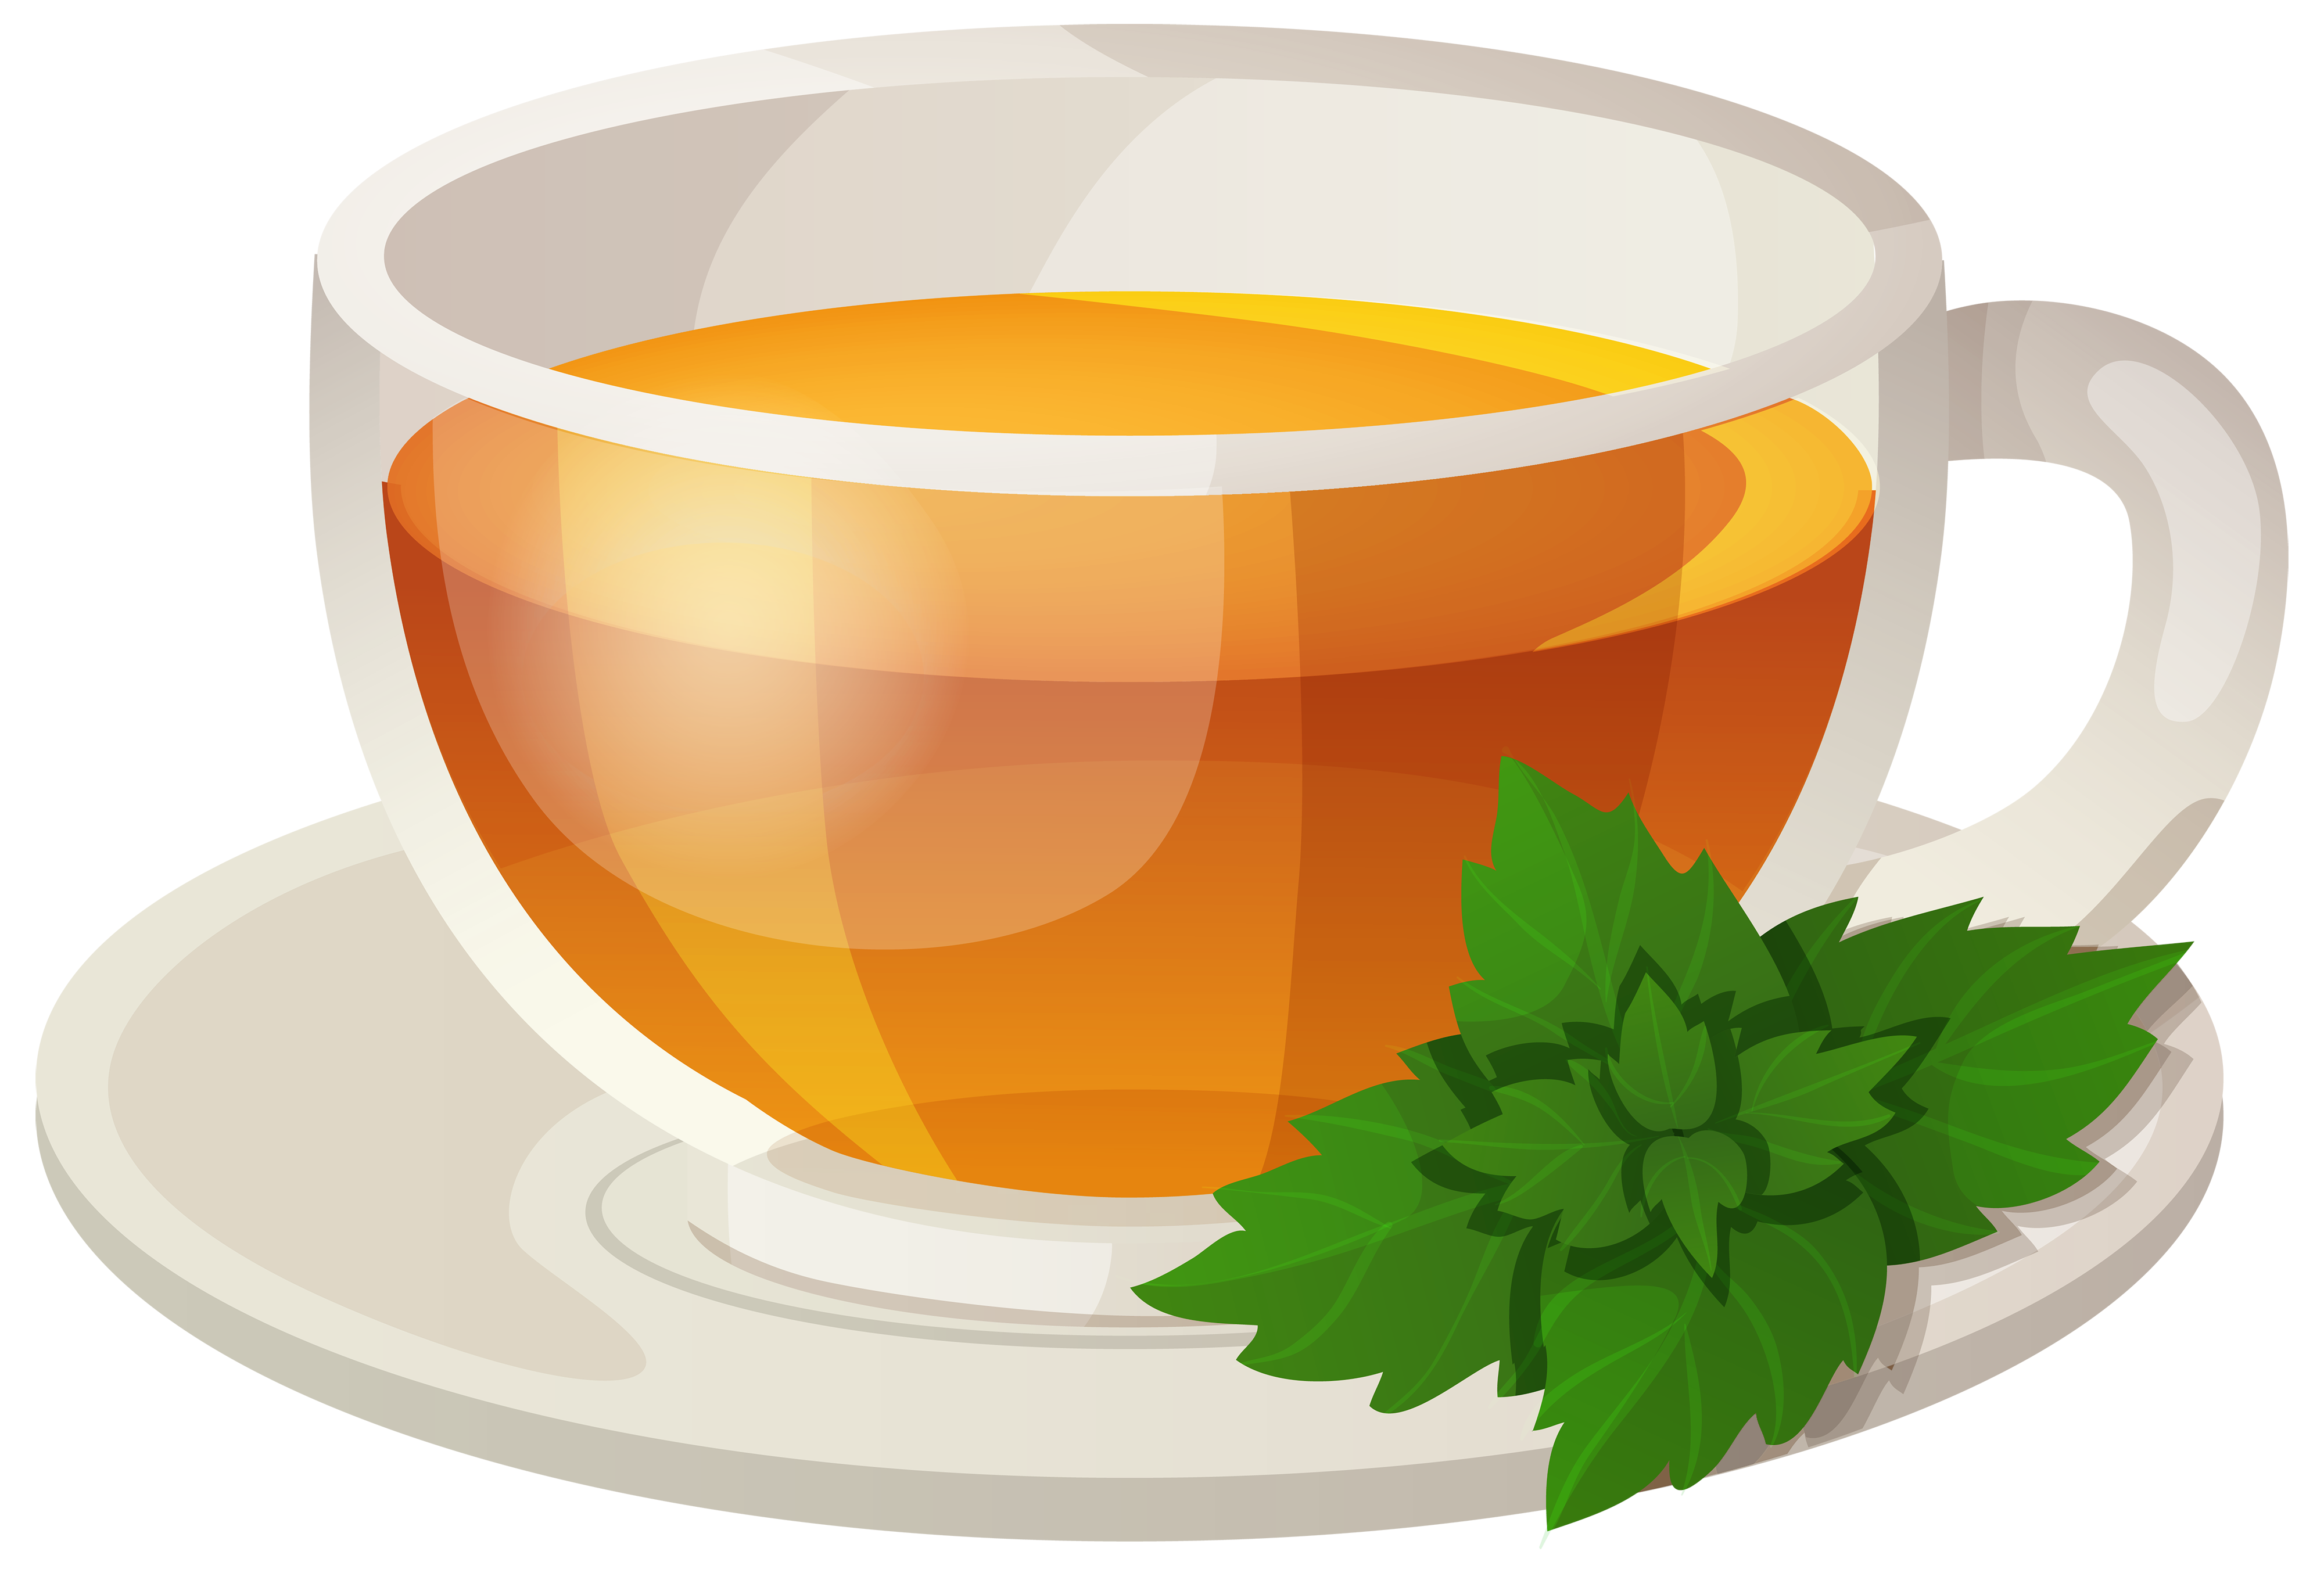 Cup of tea clipart png.